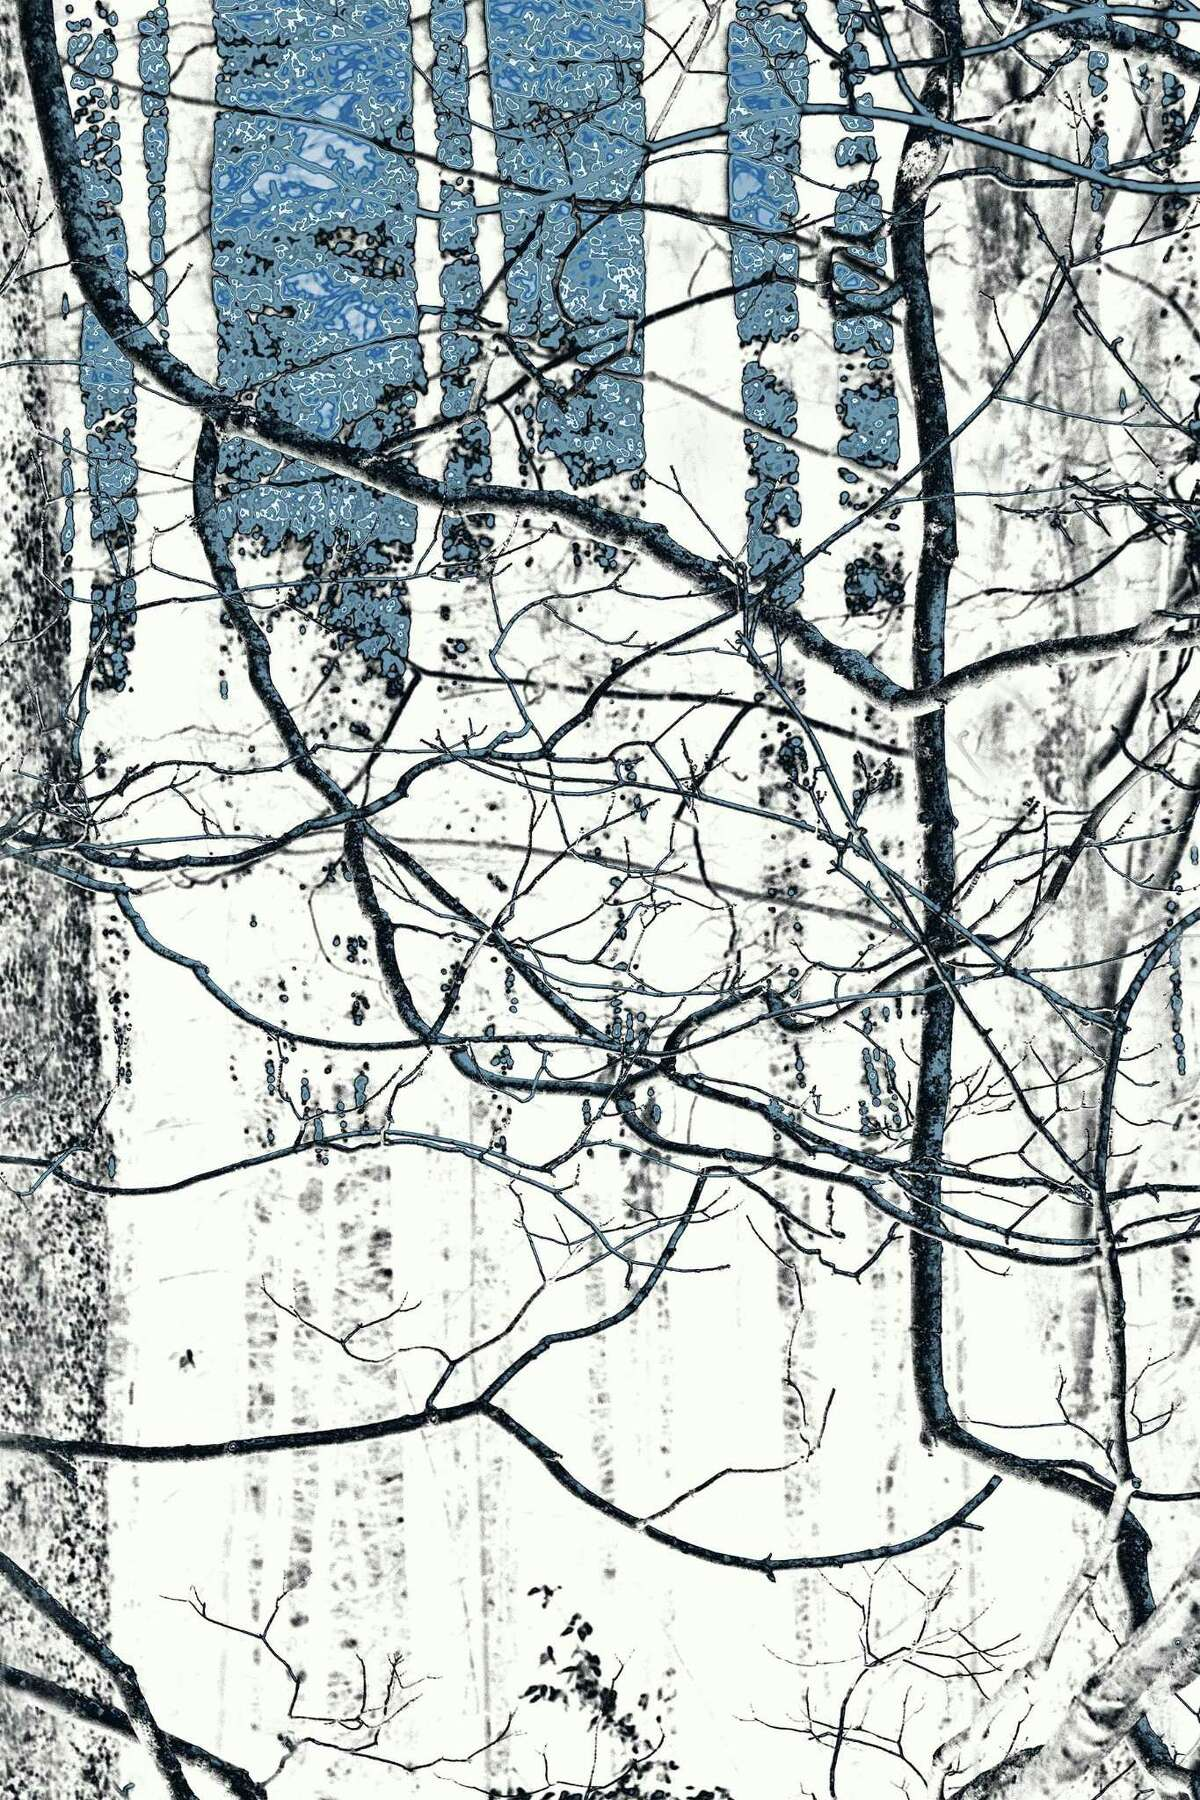 """Moving Towards Blue Sky by Nancy C. Woodward will be part of the """"The Art of Firing Circuits Studios"""" opening Feb. 6 at Wilton Library."""